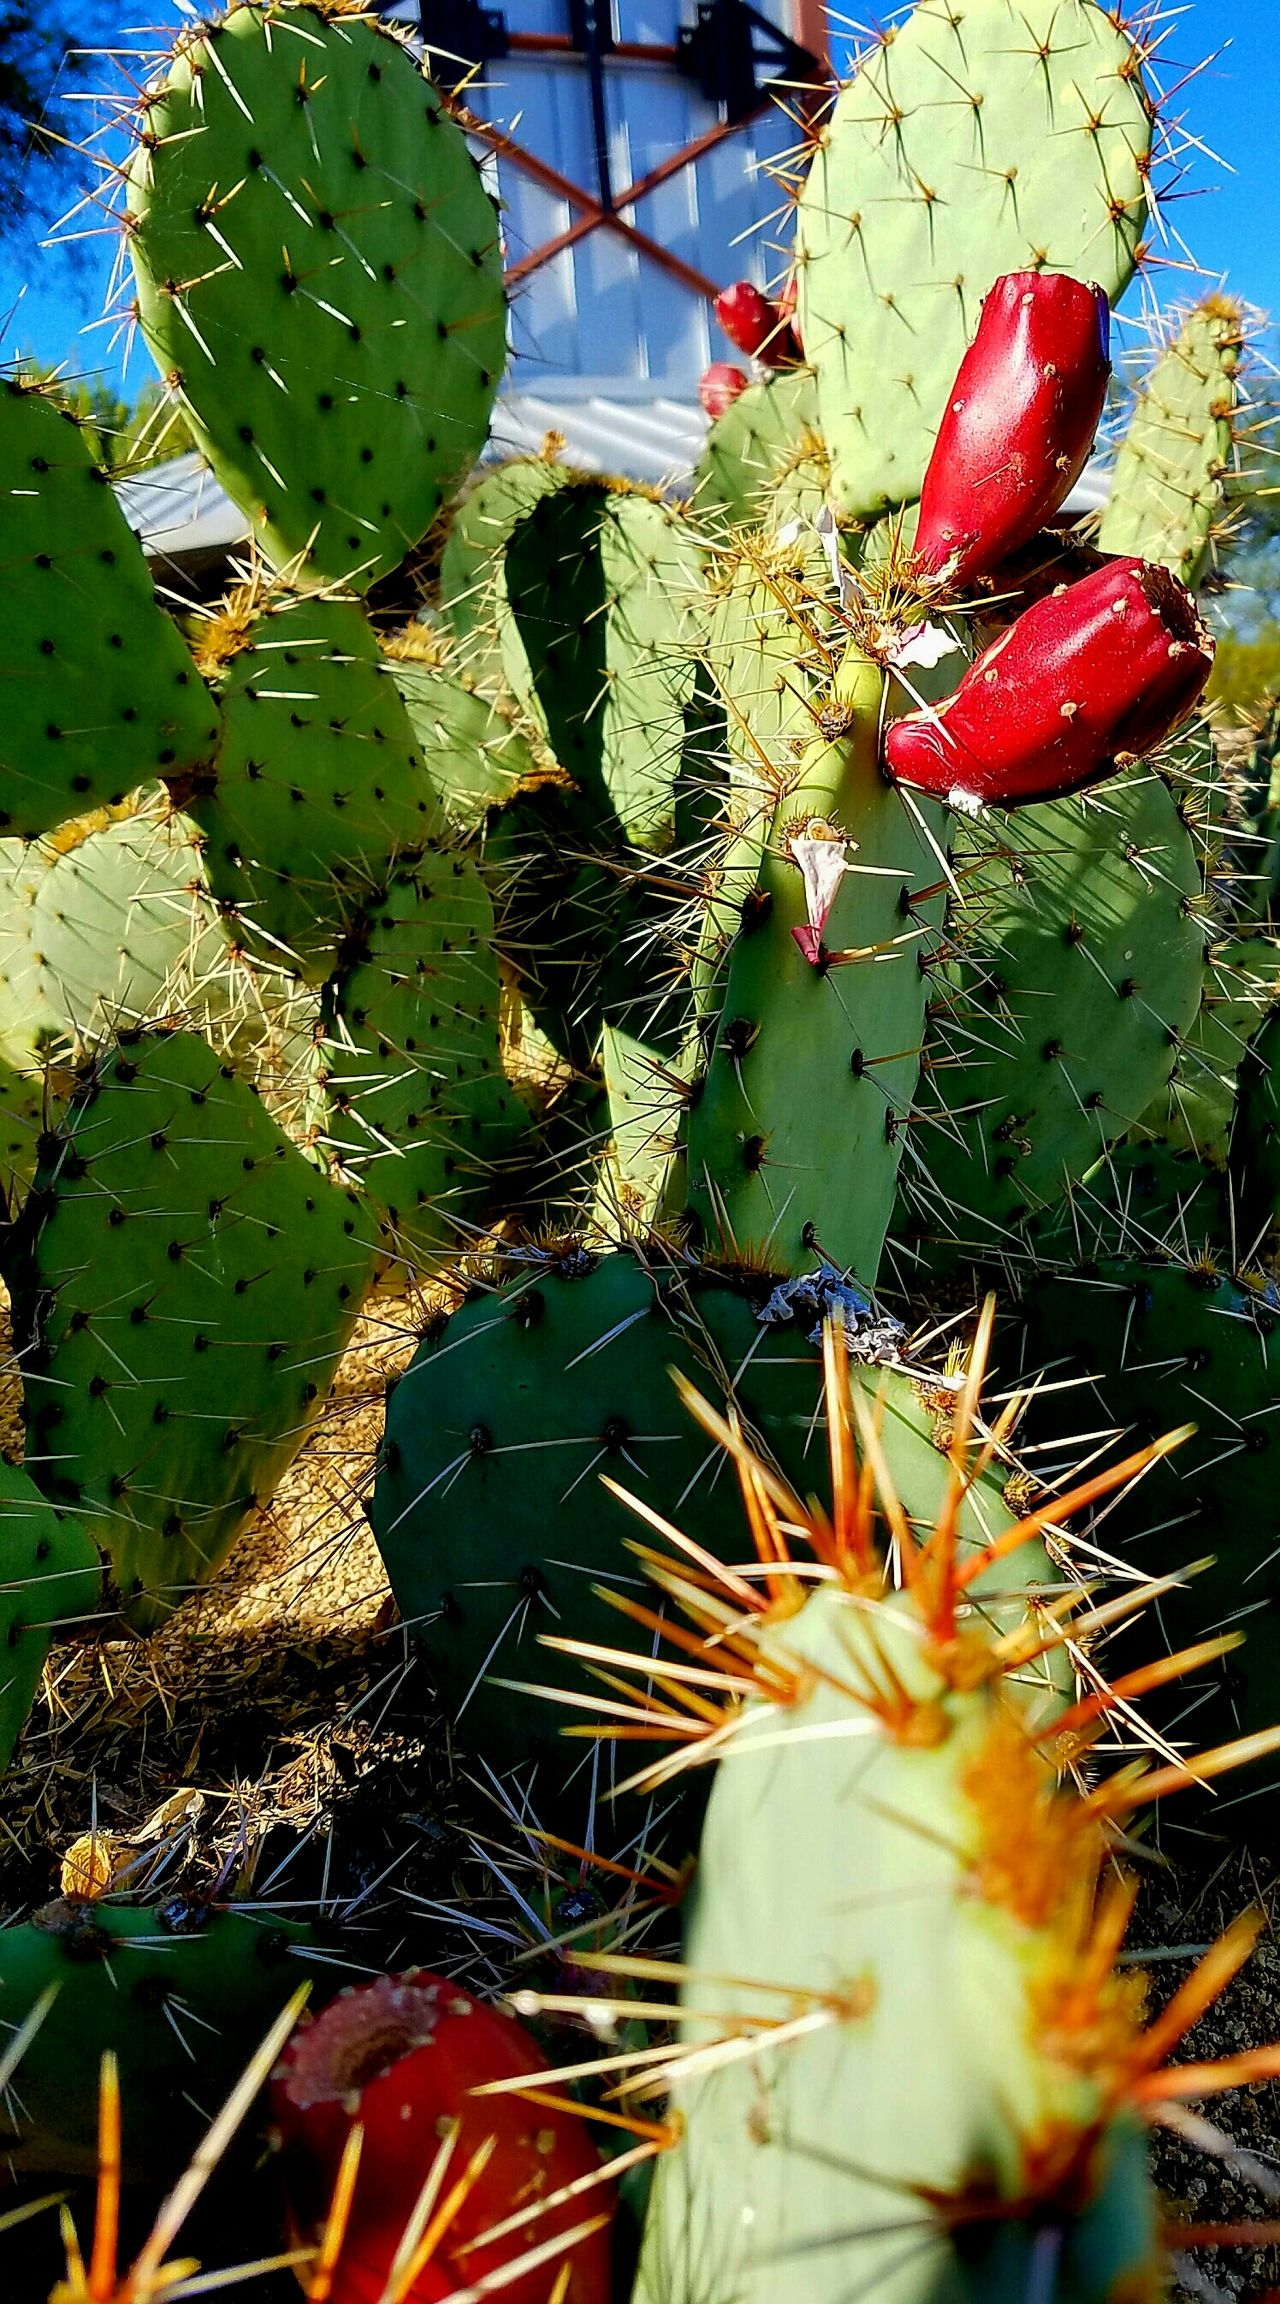 Ouch! Prickly Pear Cactus Prickly Pears Prickly Pear Jelly. Its not bad, just be very careful when you clean them 😉